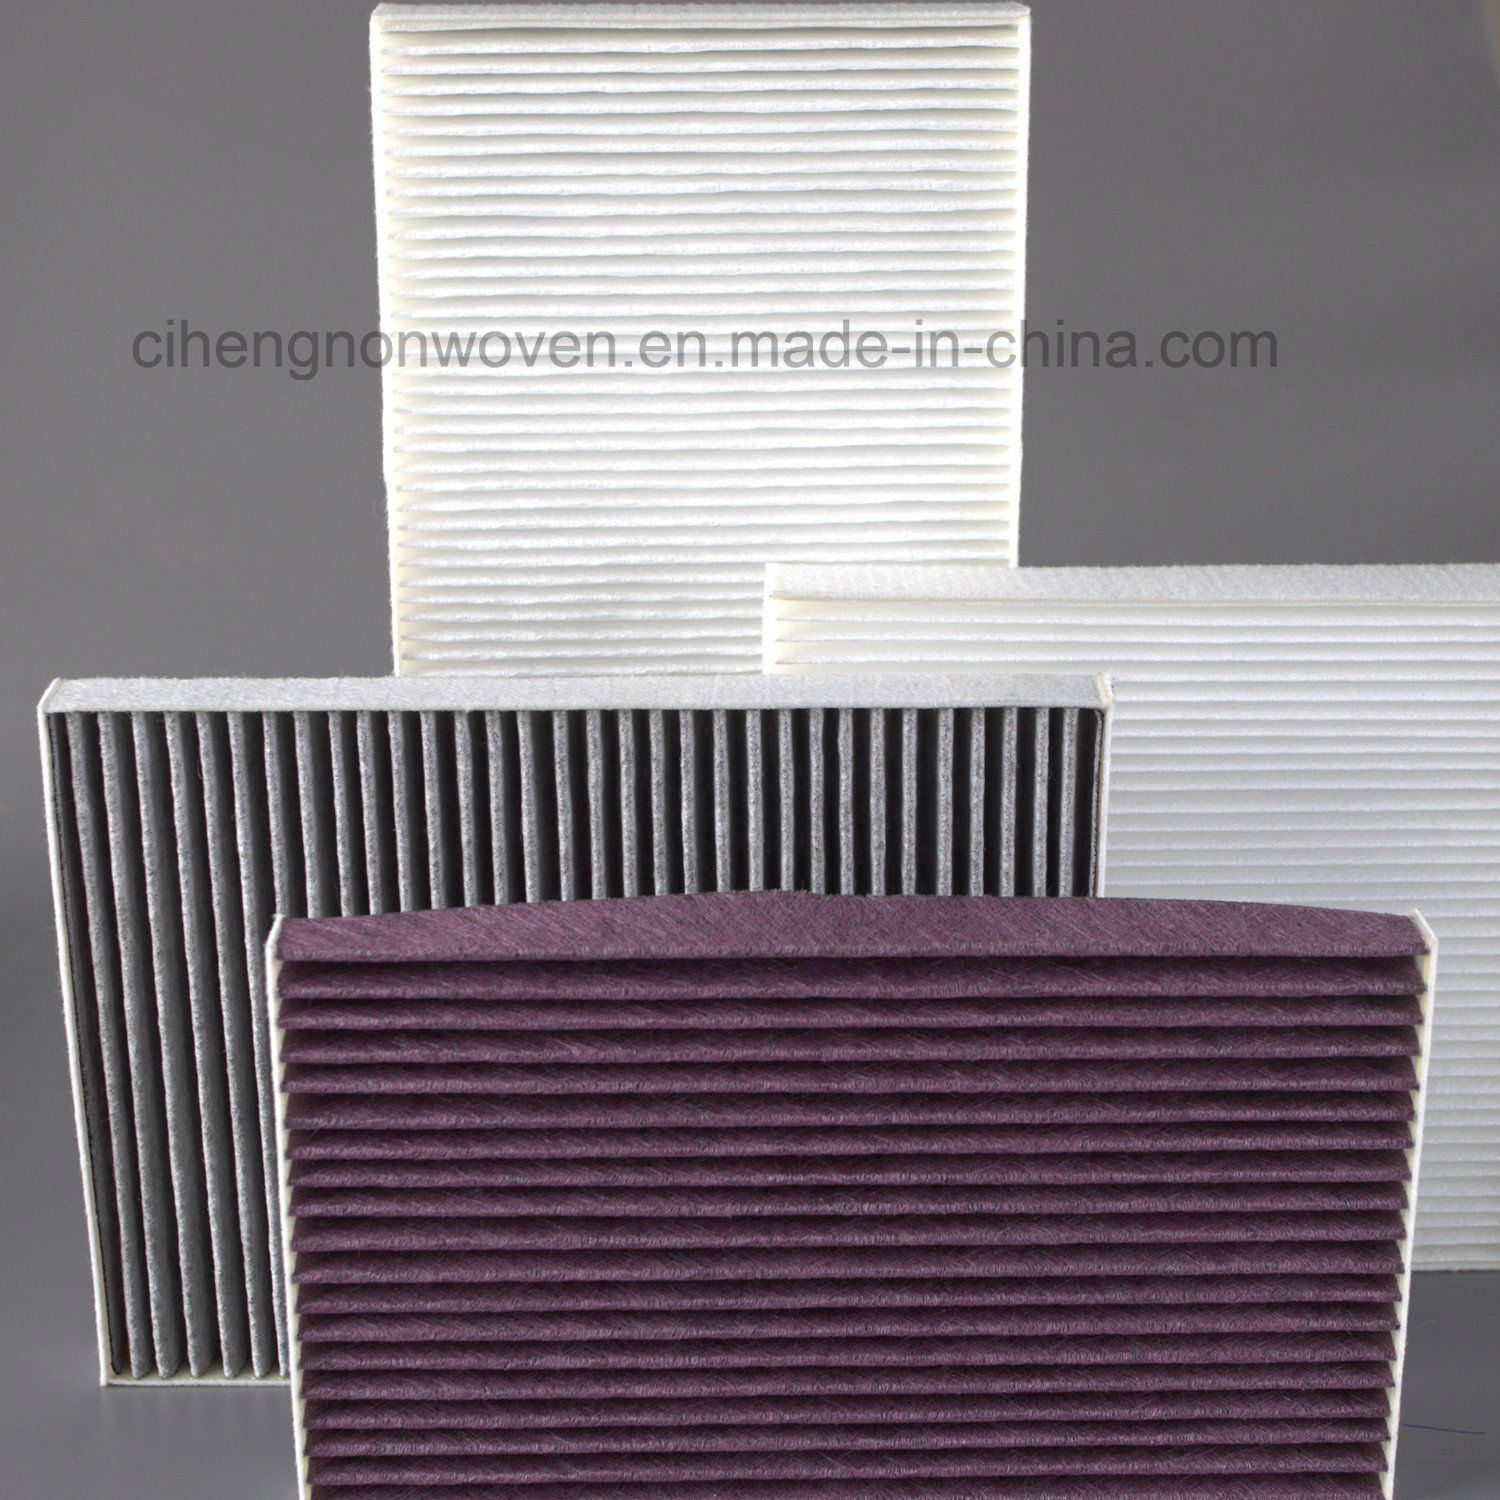 20GSM M5-M6 Standard PP Meltblown Nonwovens Air Filter Media